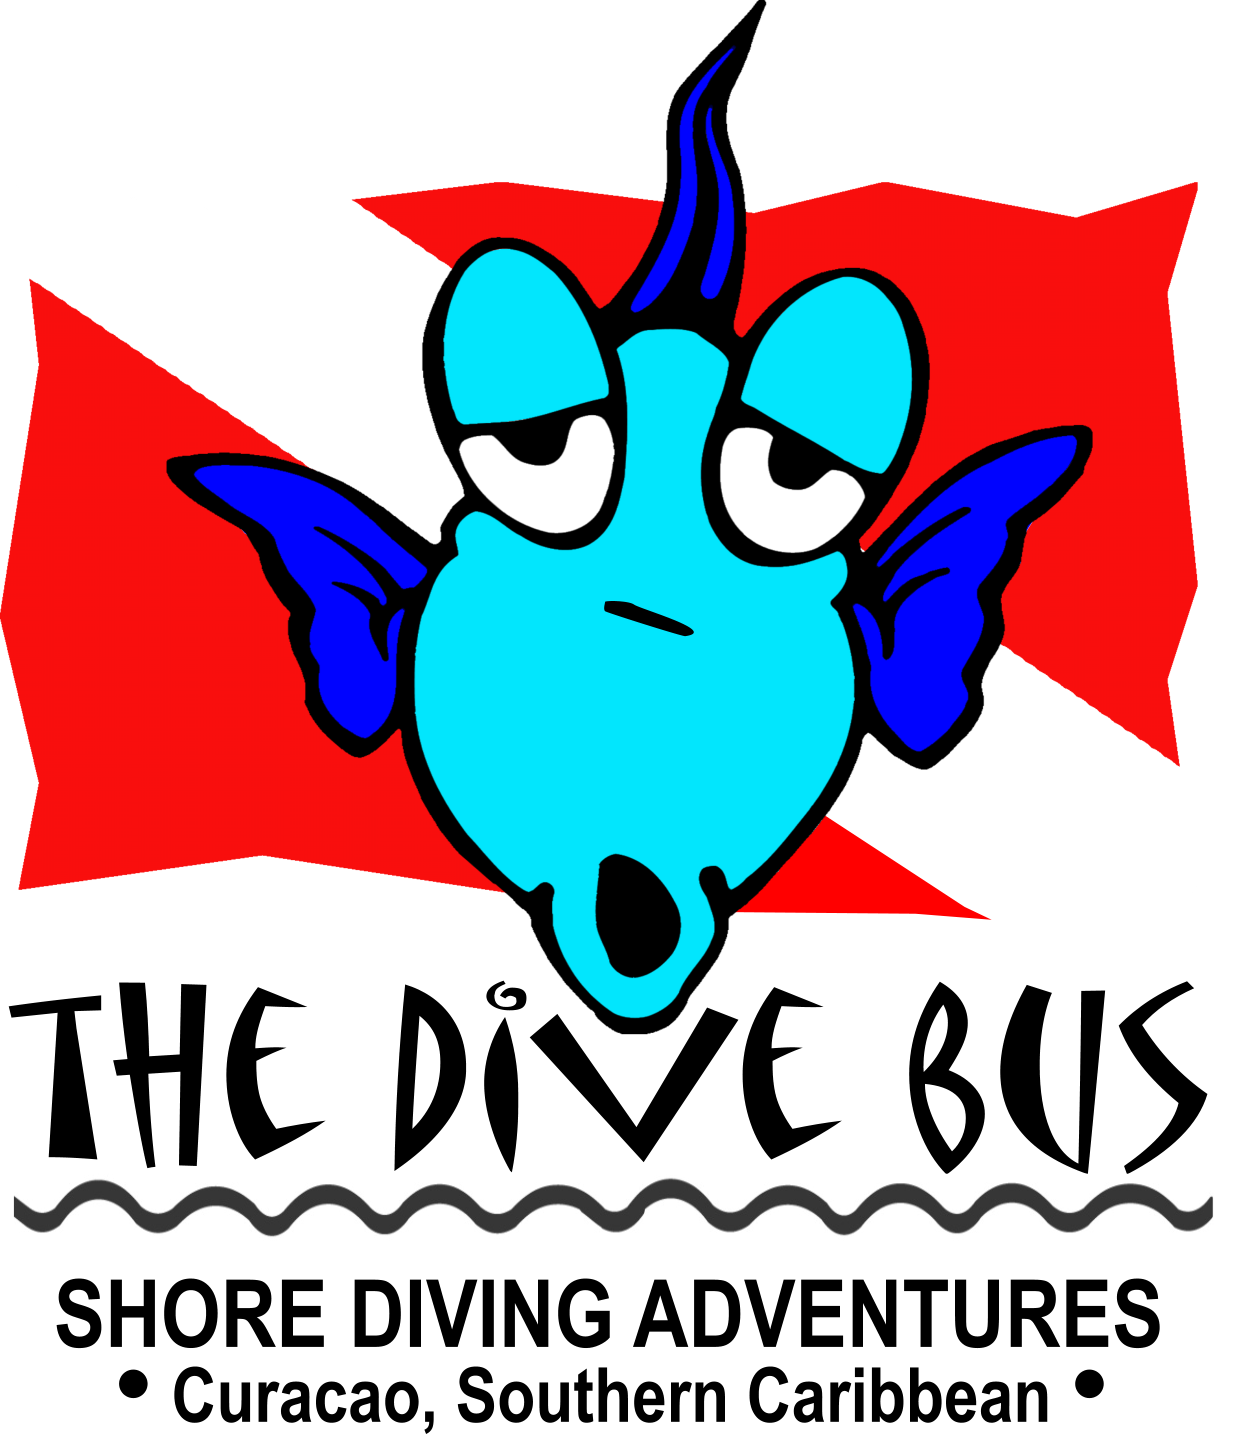 http://the-dive-bus.com